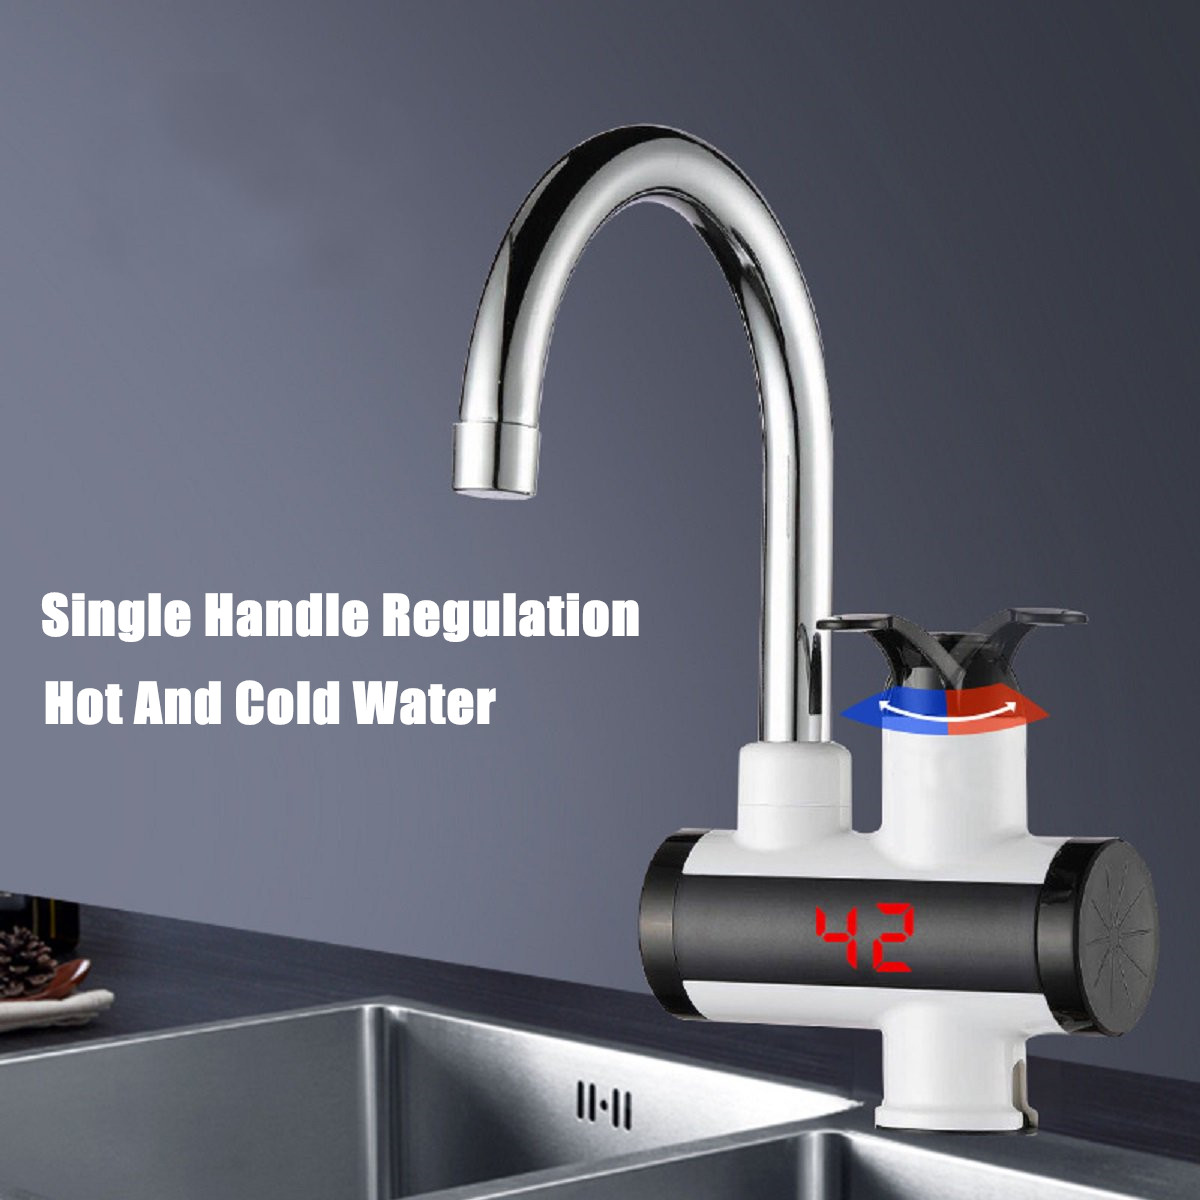 220V 3000W Instant Electric Faucet Tap Hot Water Heater LED Display Bathroom Kitchen Under Inflow/Lateral Inflow IPX4